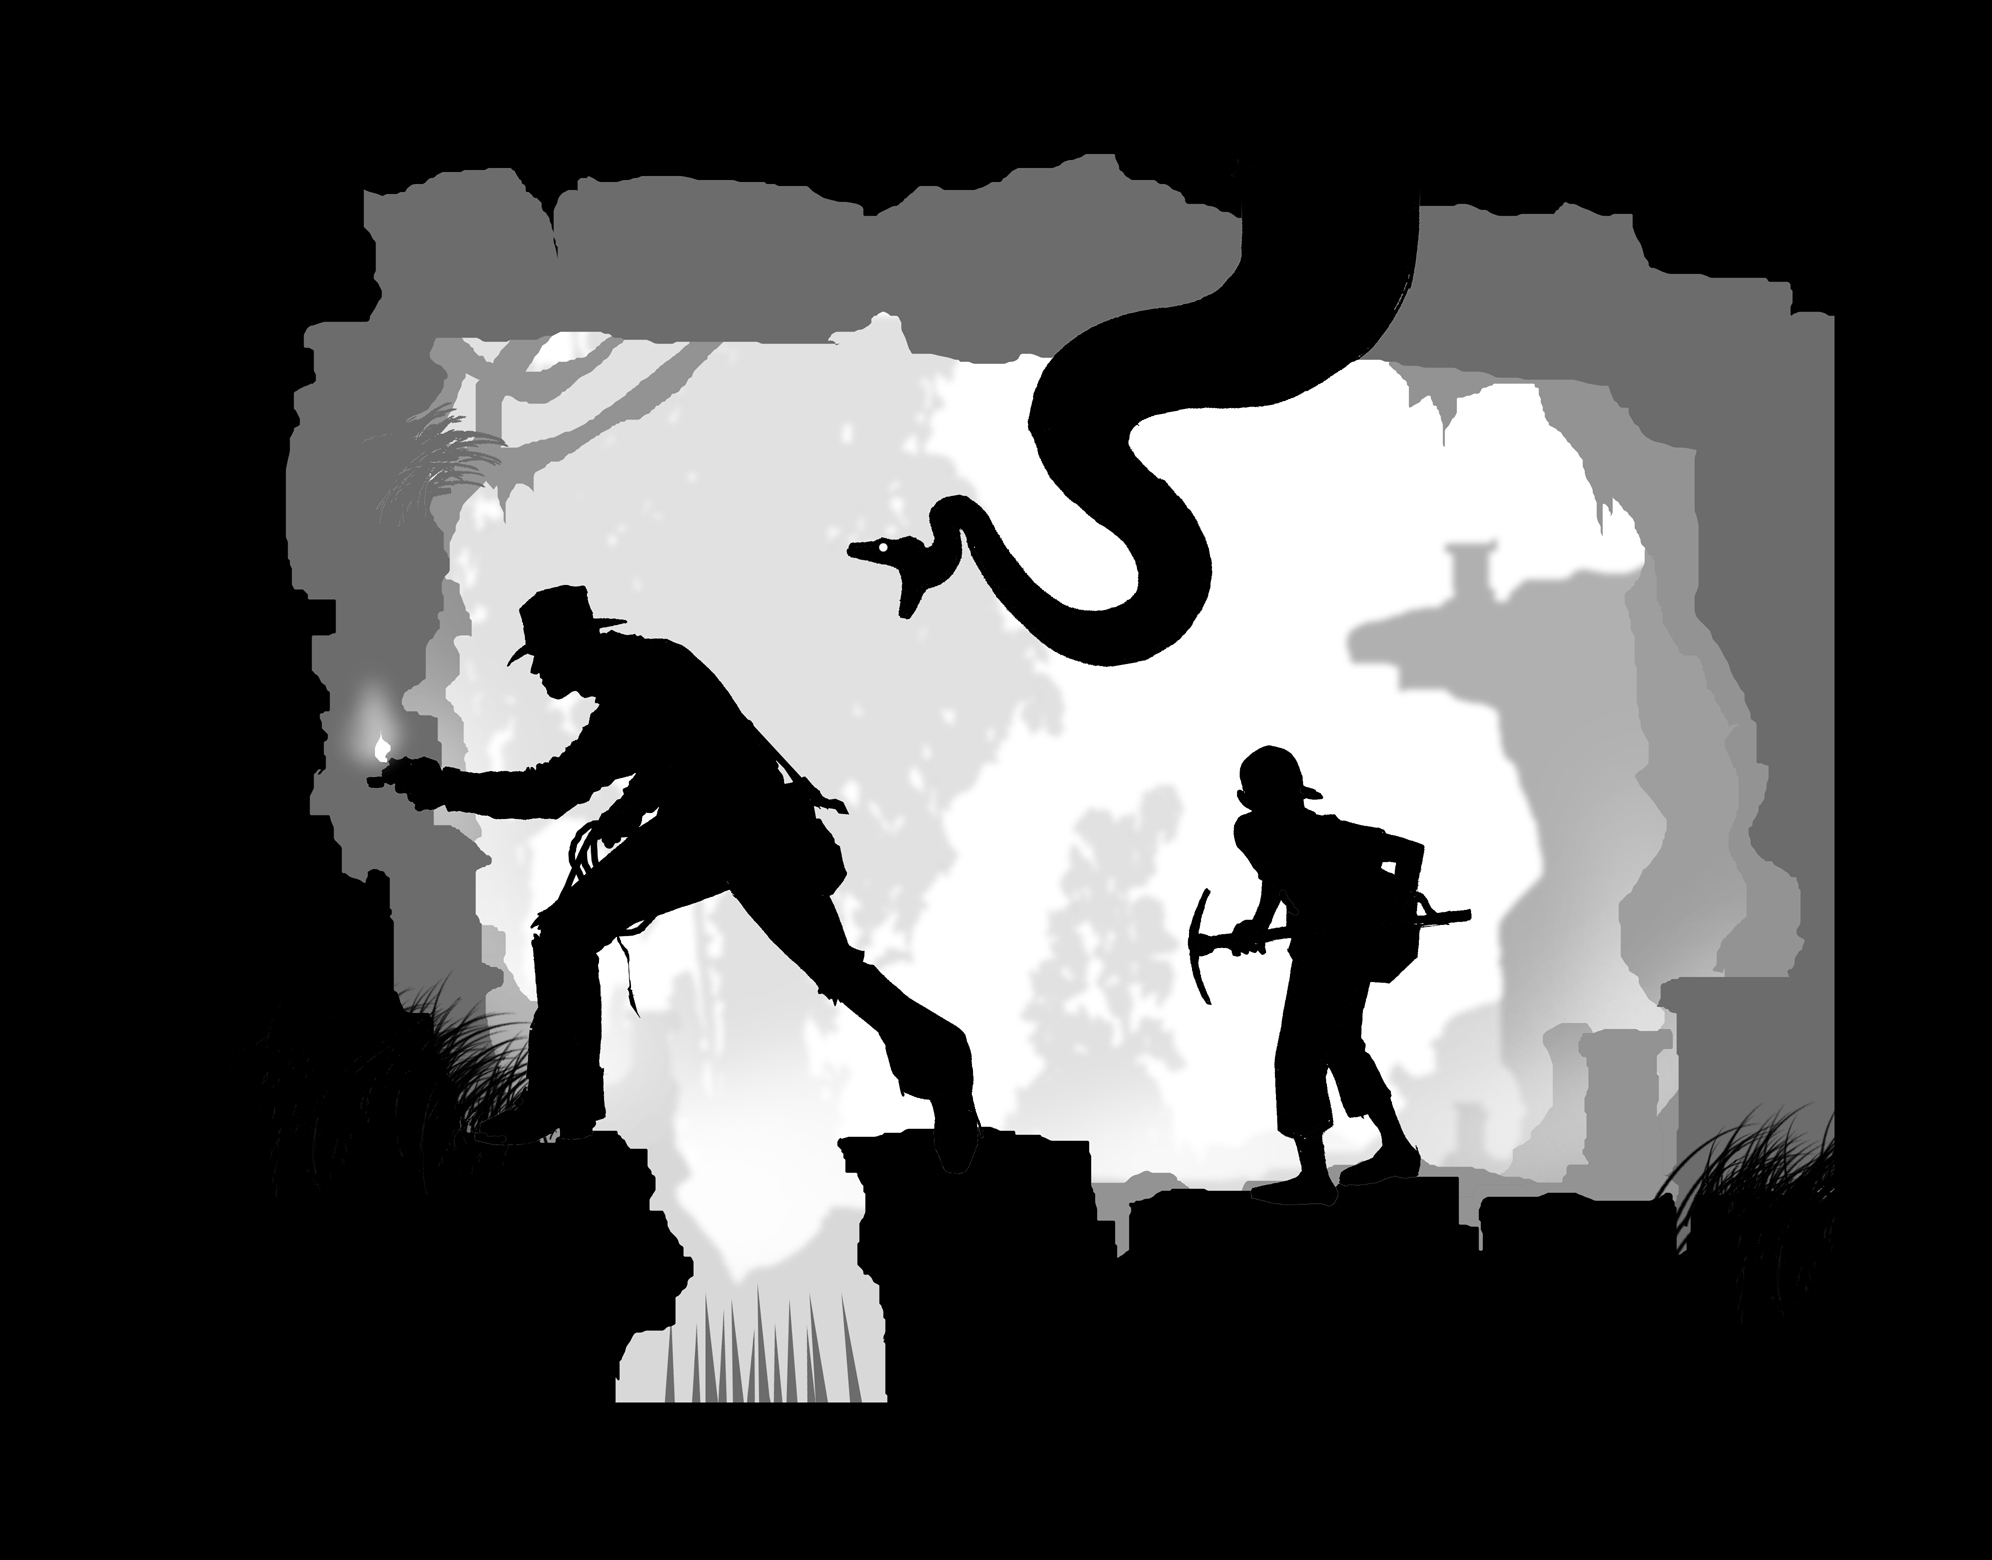 Indiana jones silhouette artwork HD Wallpaper